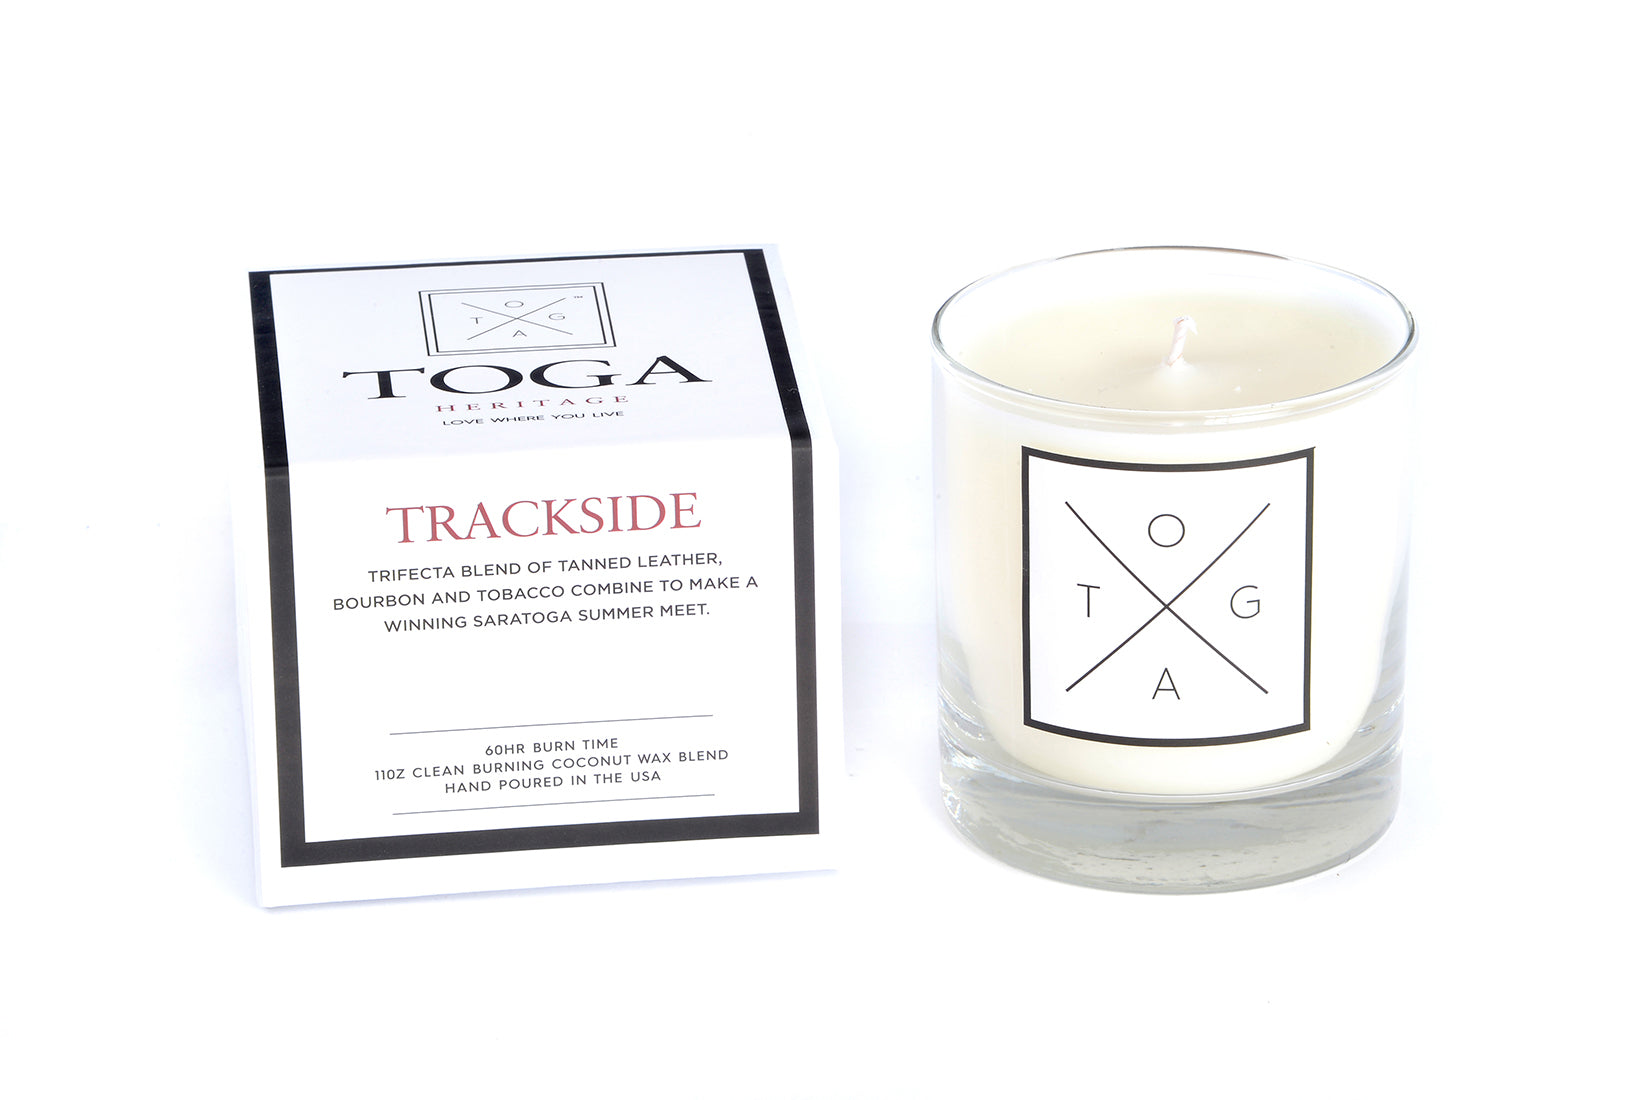 TRACKSIDE Candle